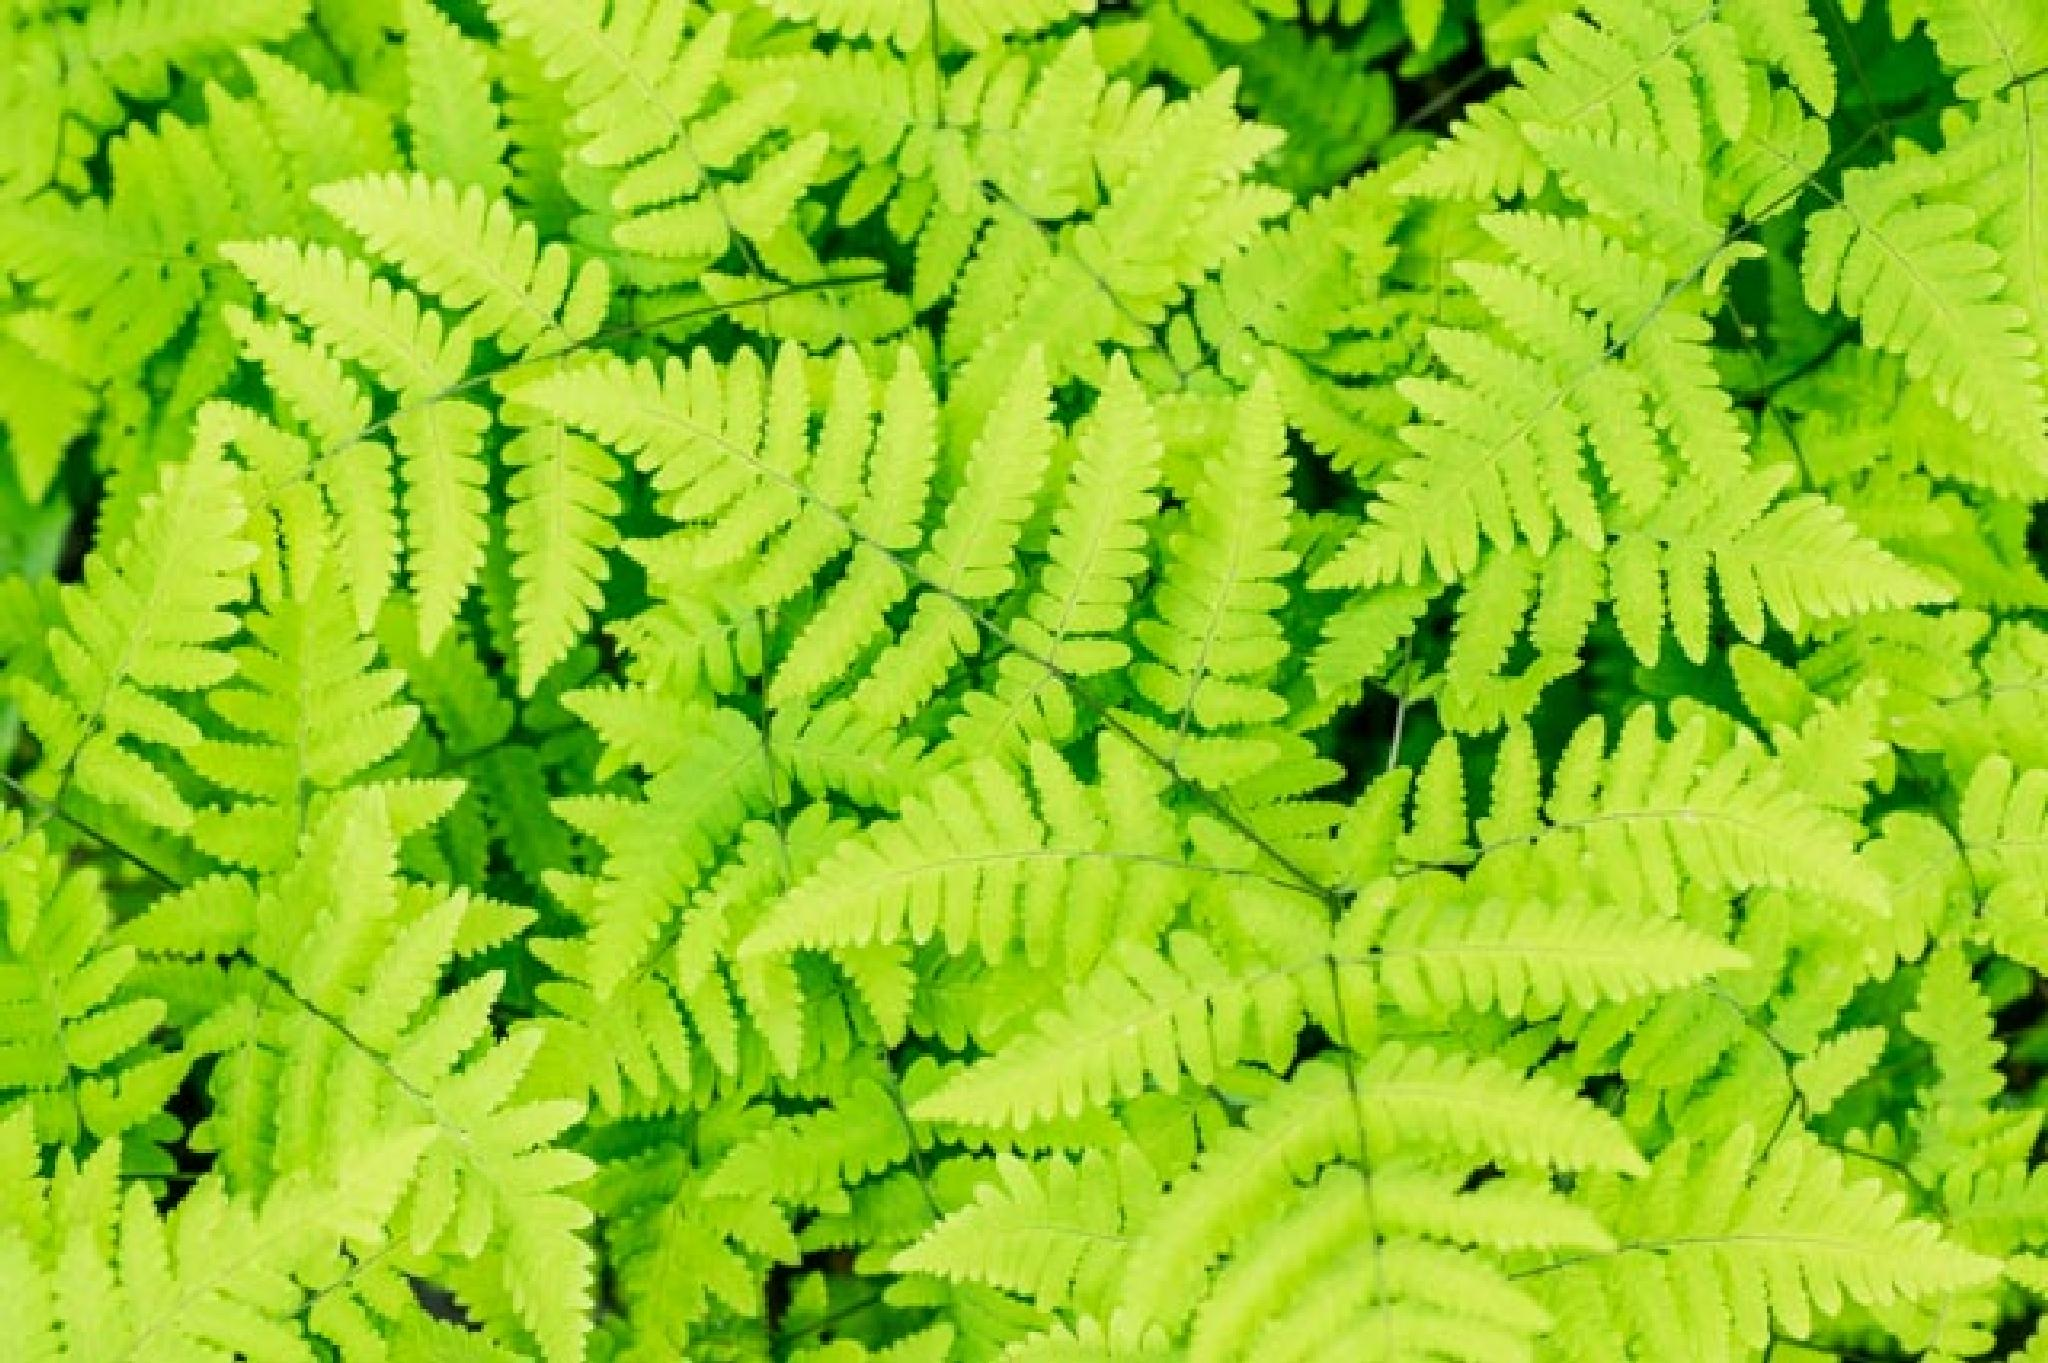 green leafs by gorber